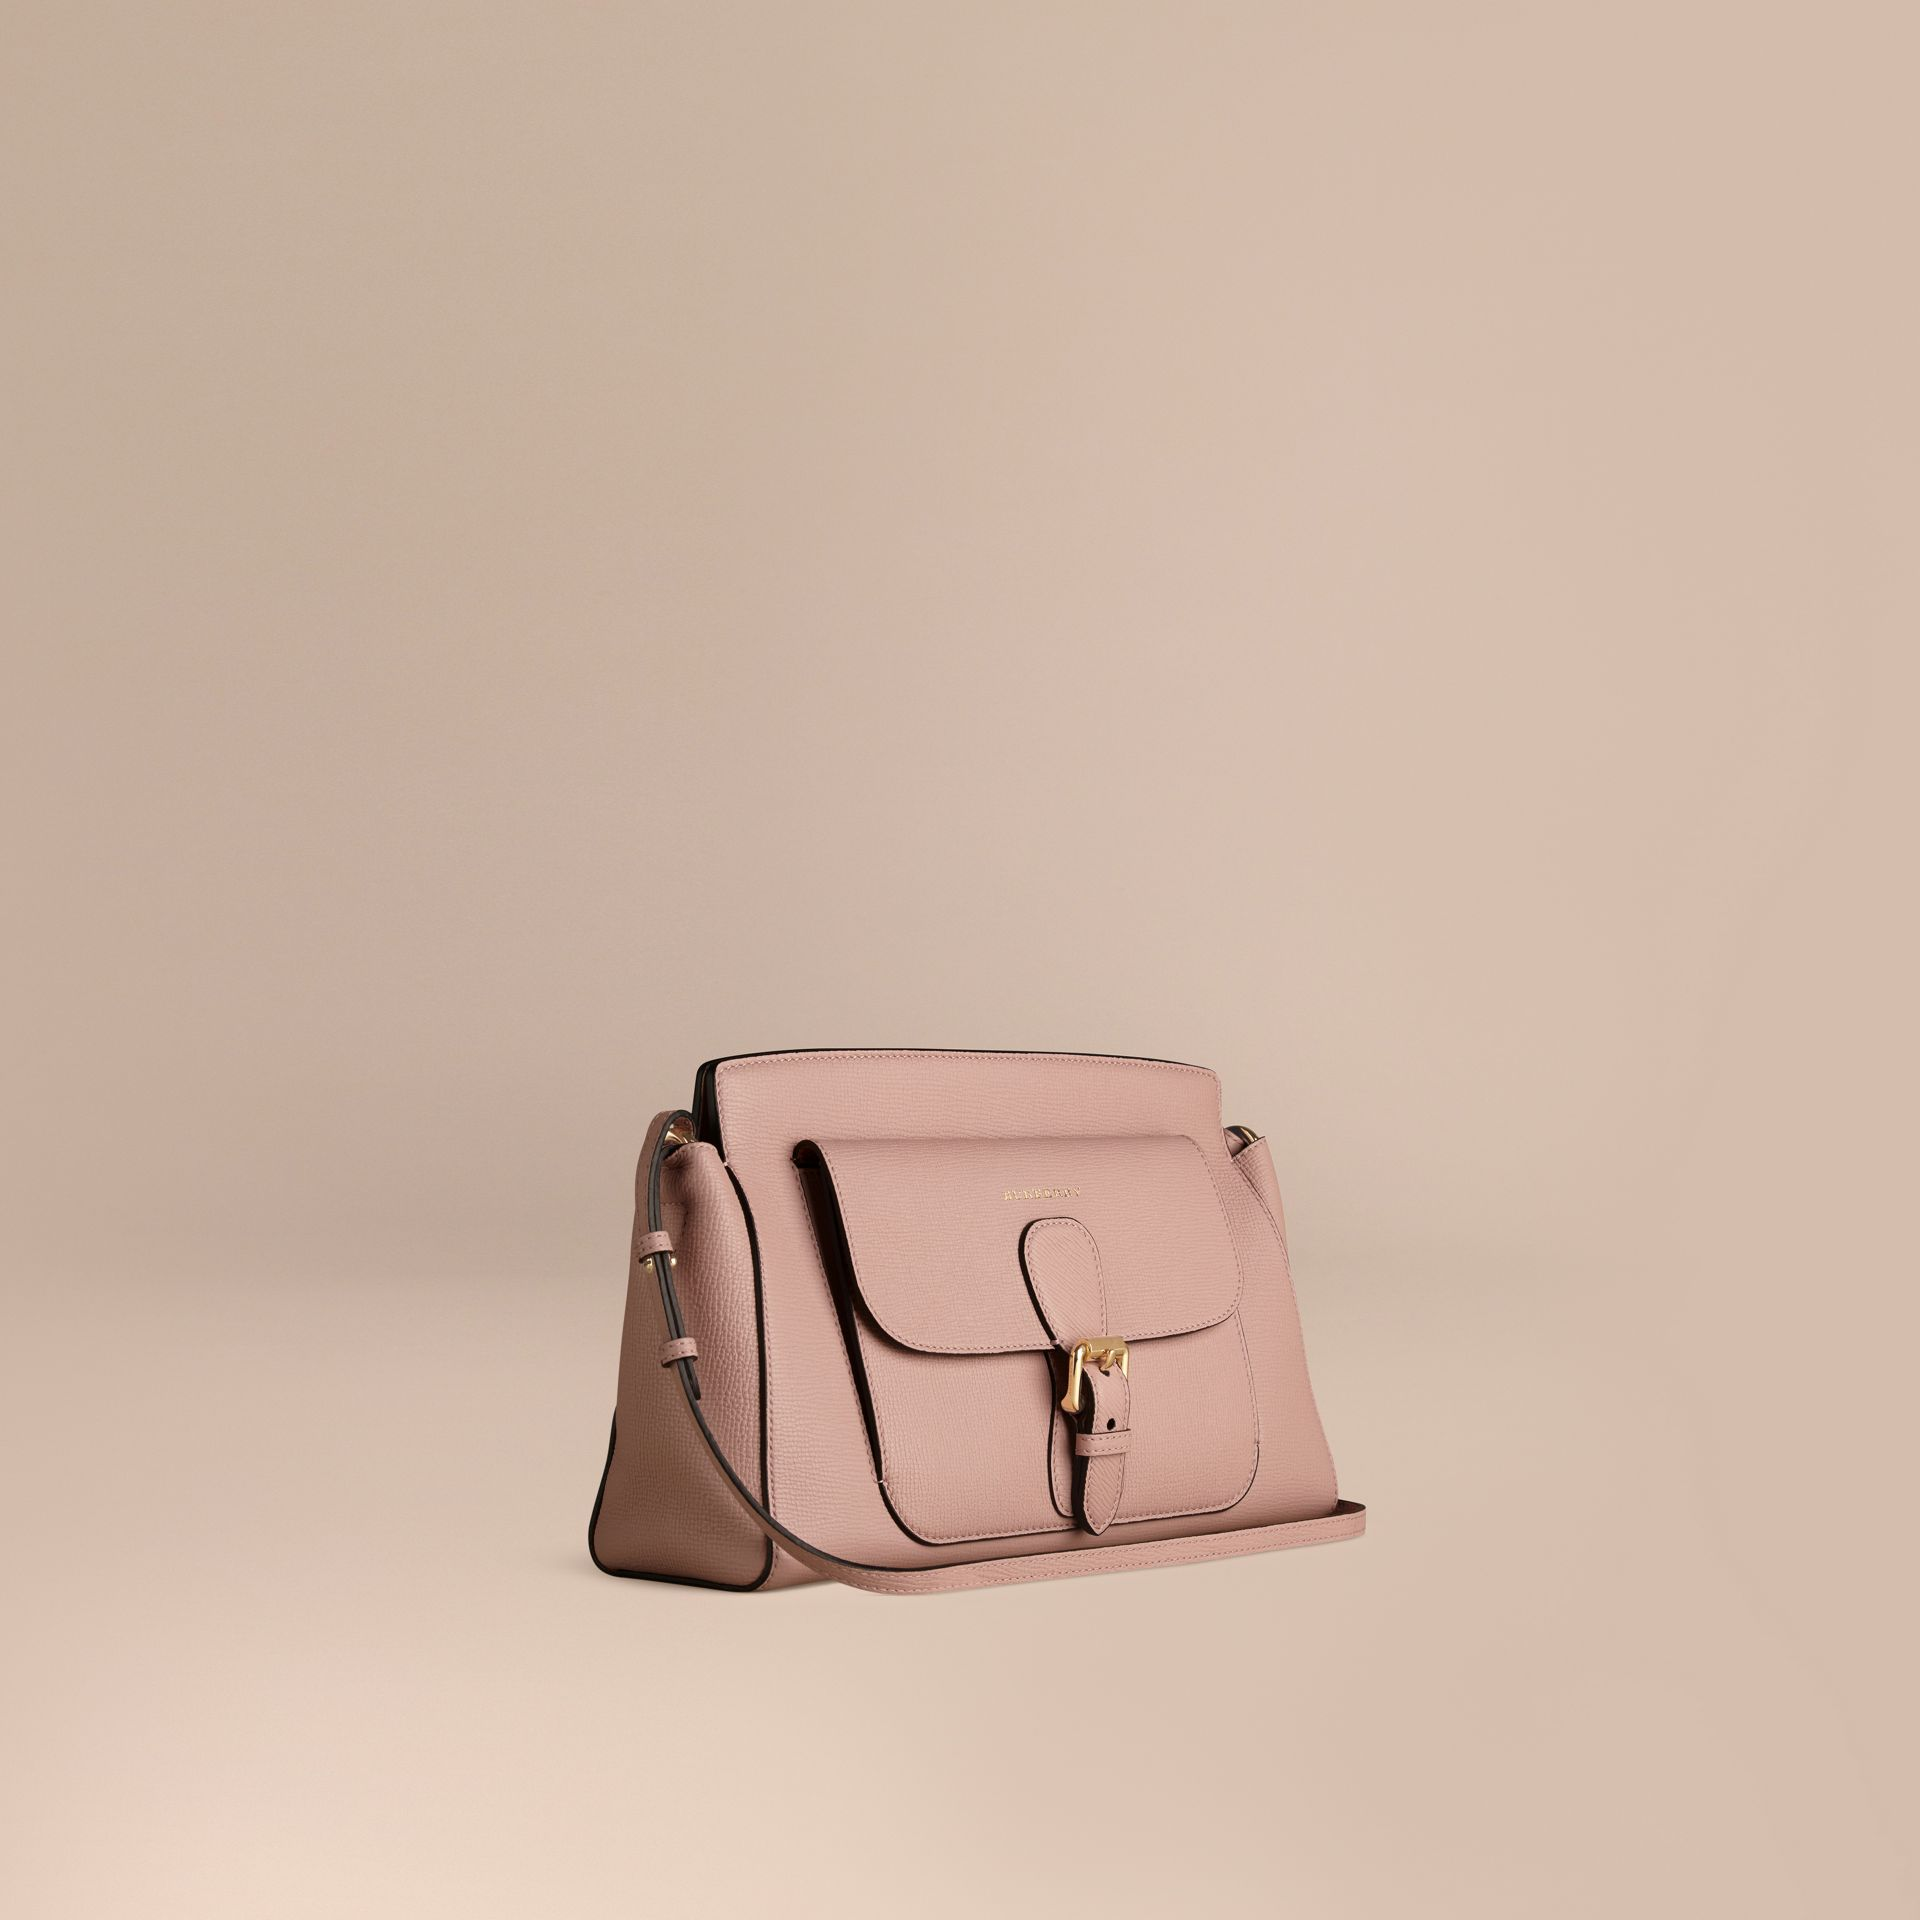 Pale orchid The Saddle Clutch in Grainy Bonded Leather Pale Orchid - gallery image 1